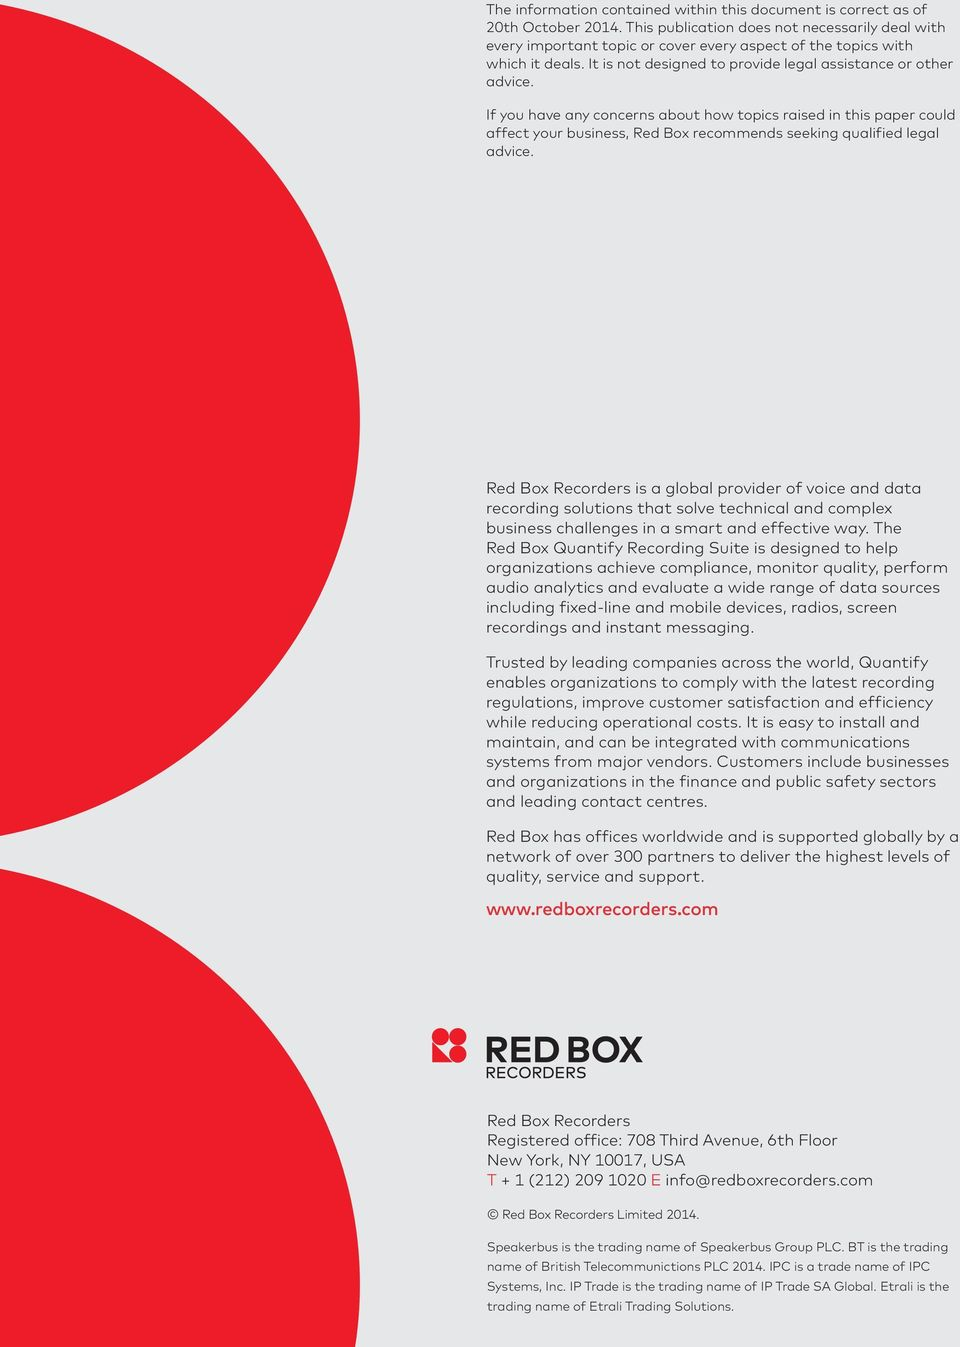 If you have any concerns about how topics raised in this paper could affect your business, Red Box recommends seeking qualified legal advice.